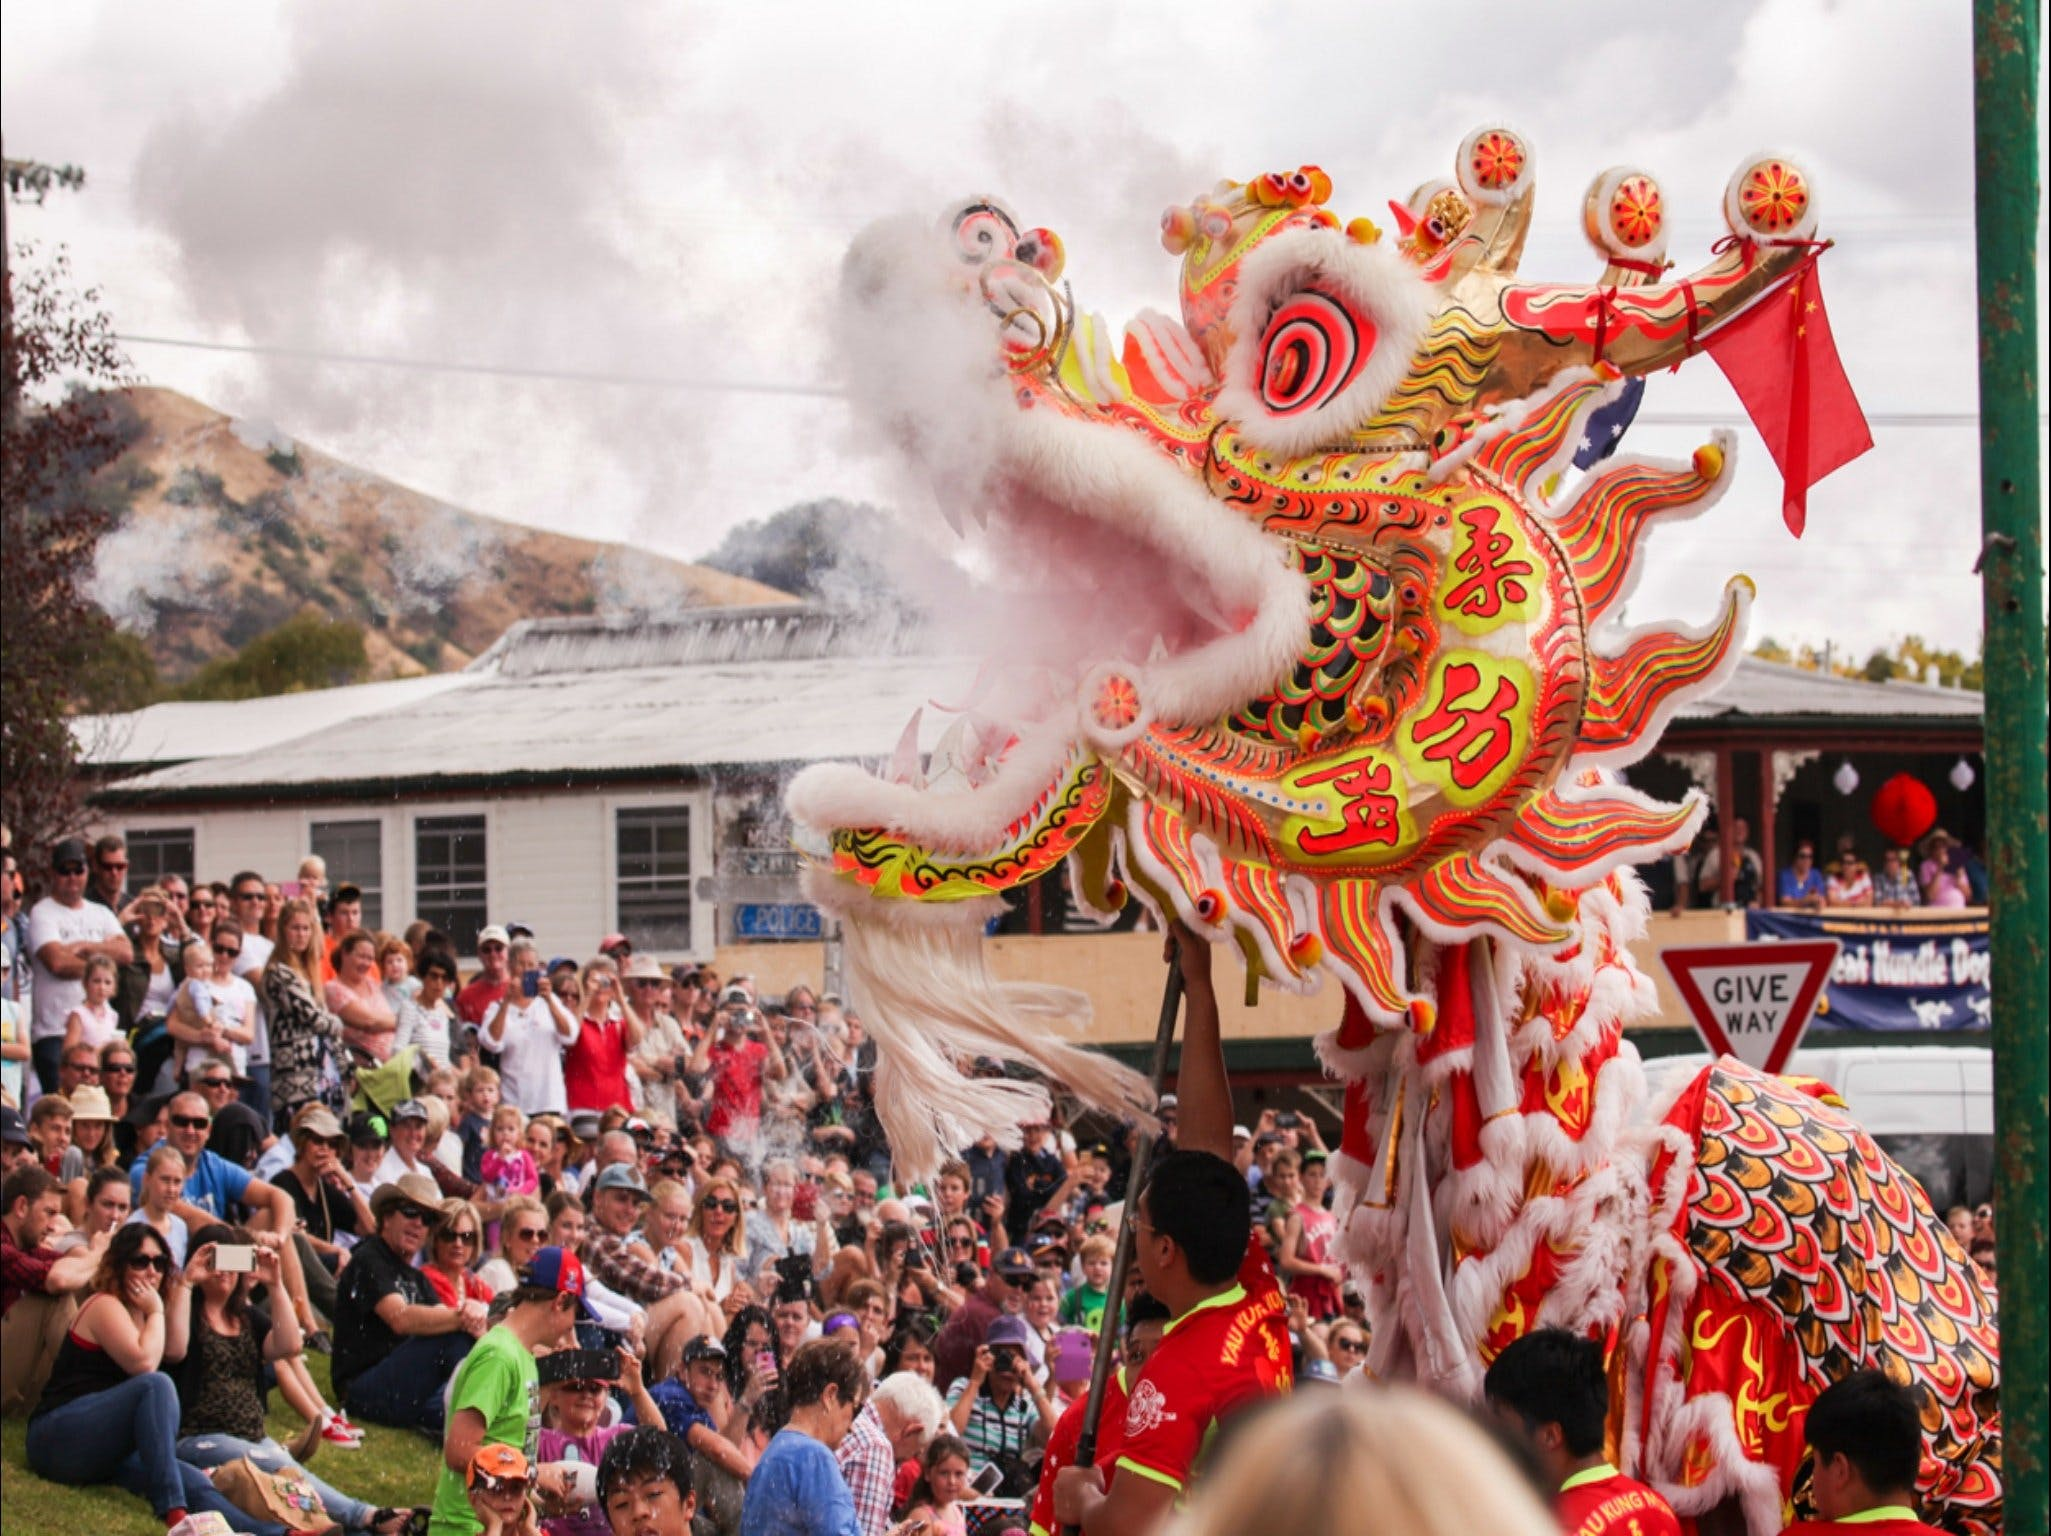 Nundle Go For Gold Chinese Easter Festival - Surfers Gold Coast